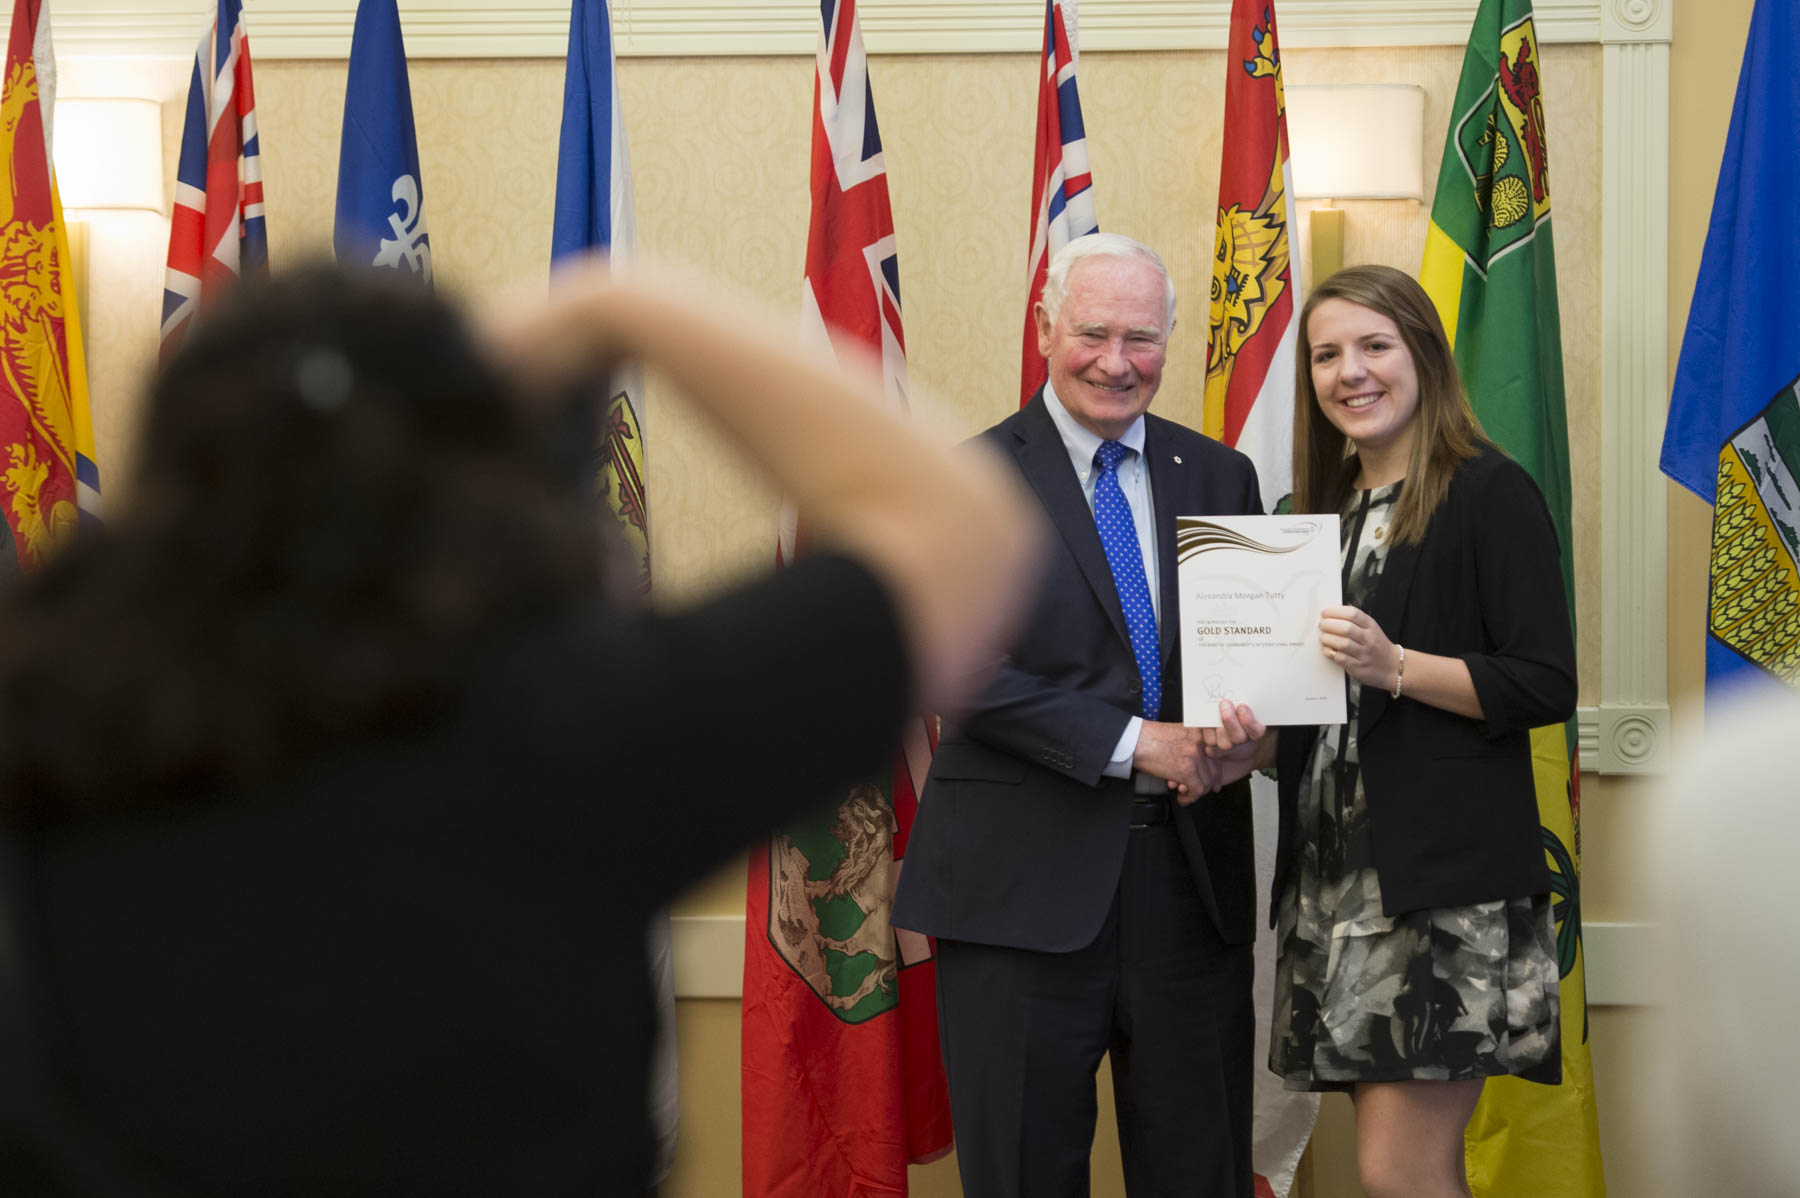 Upon his arrival in Moncton, the Governor General presented The Duke of Edinburgh's Gold Award to 31 young people from across Canada.